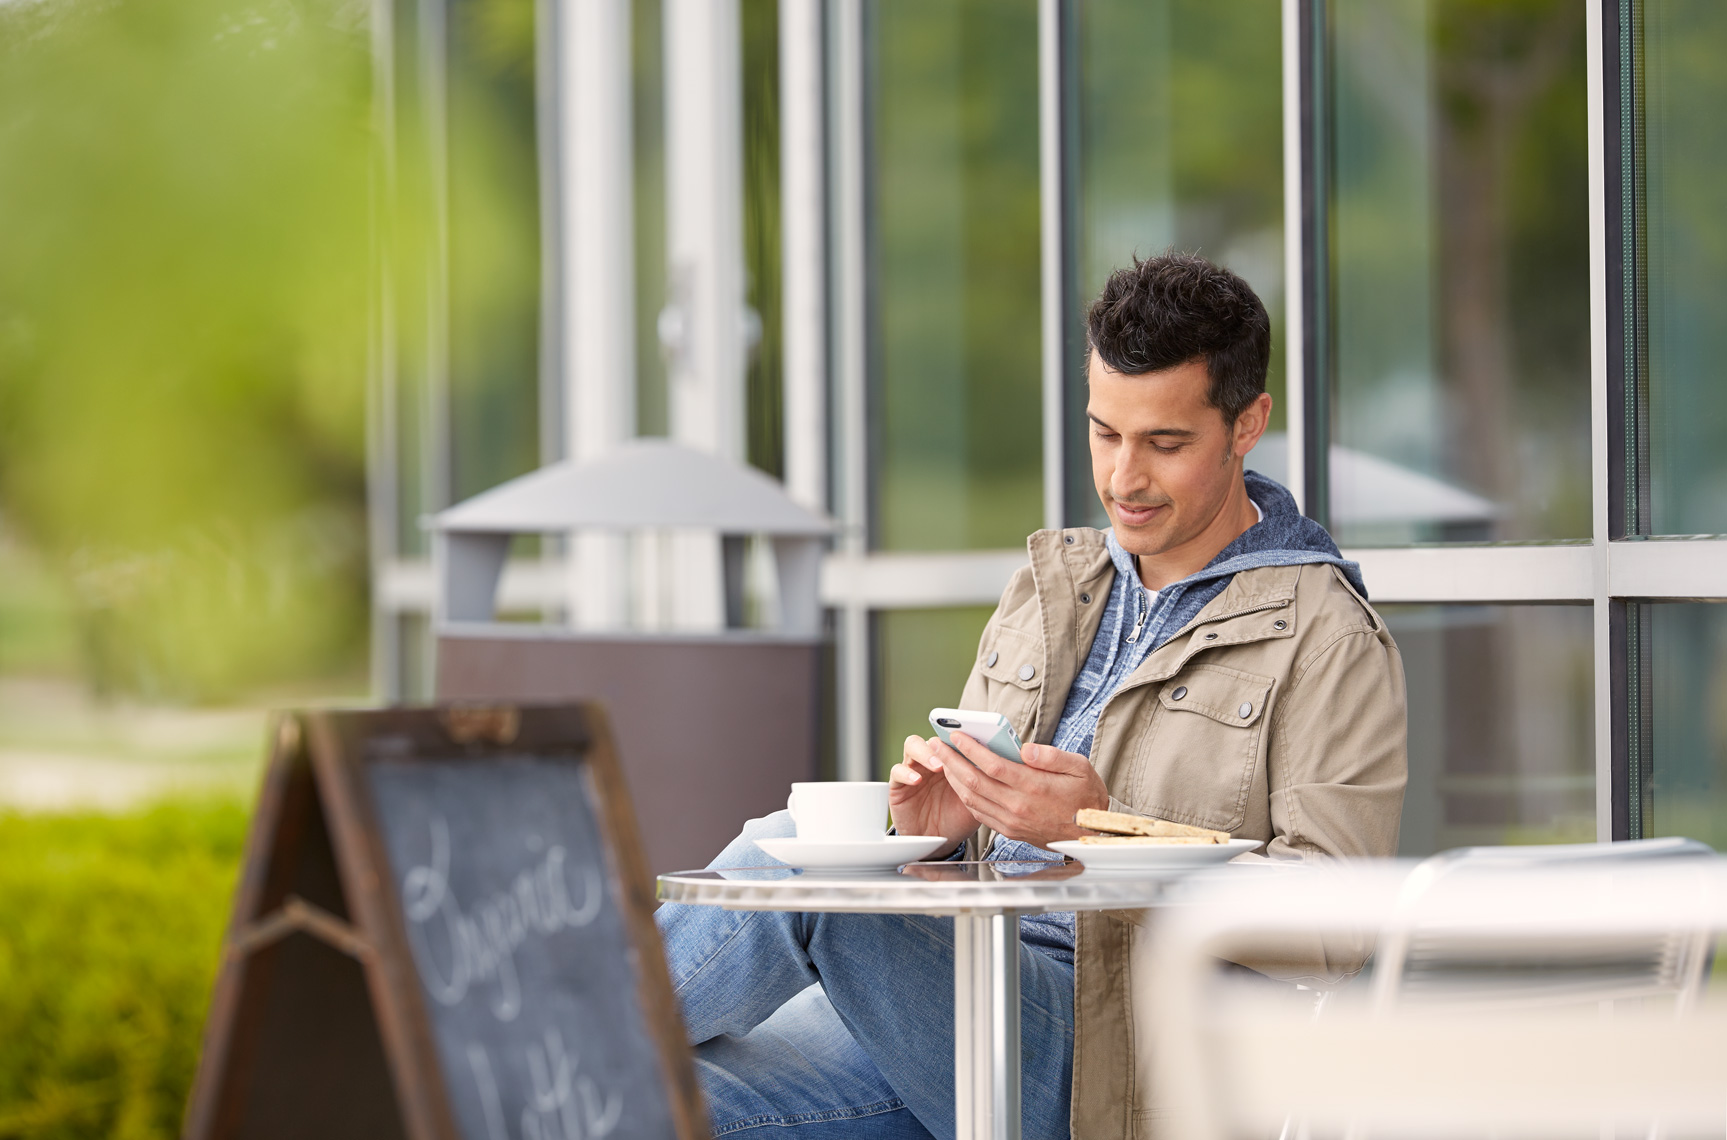 young man sitting at outdoor cafe drinking coffee in the city, lifestyle, advertising, commercial photography